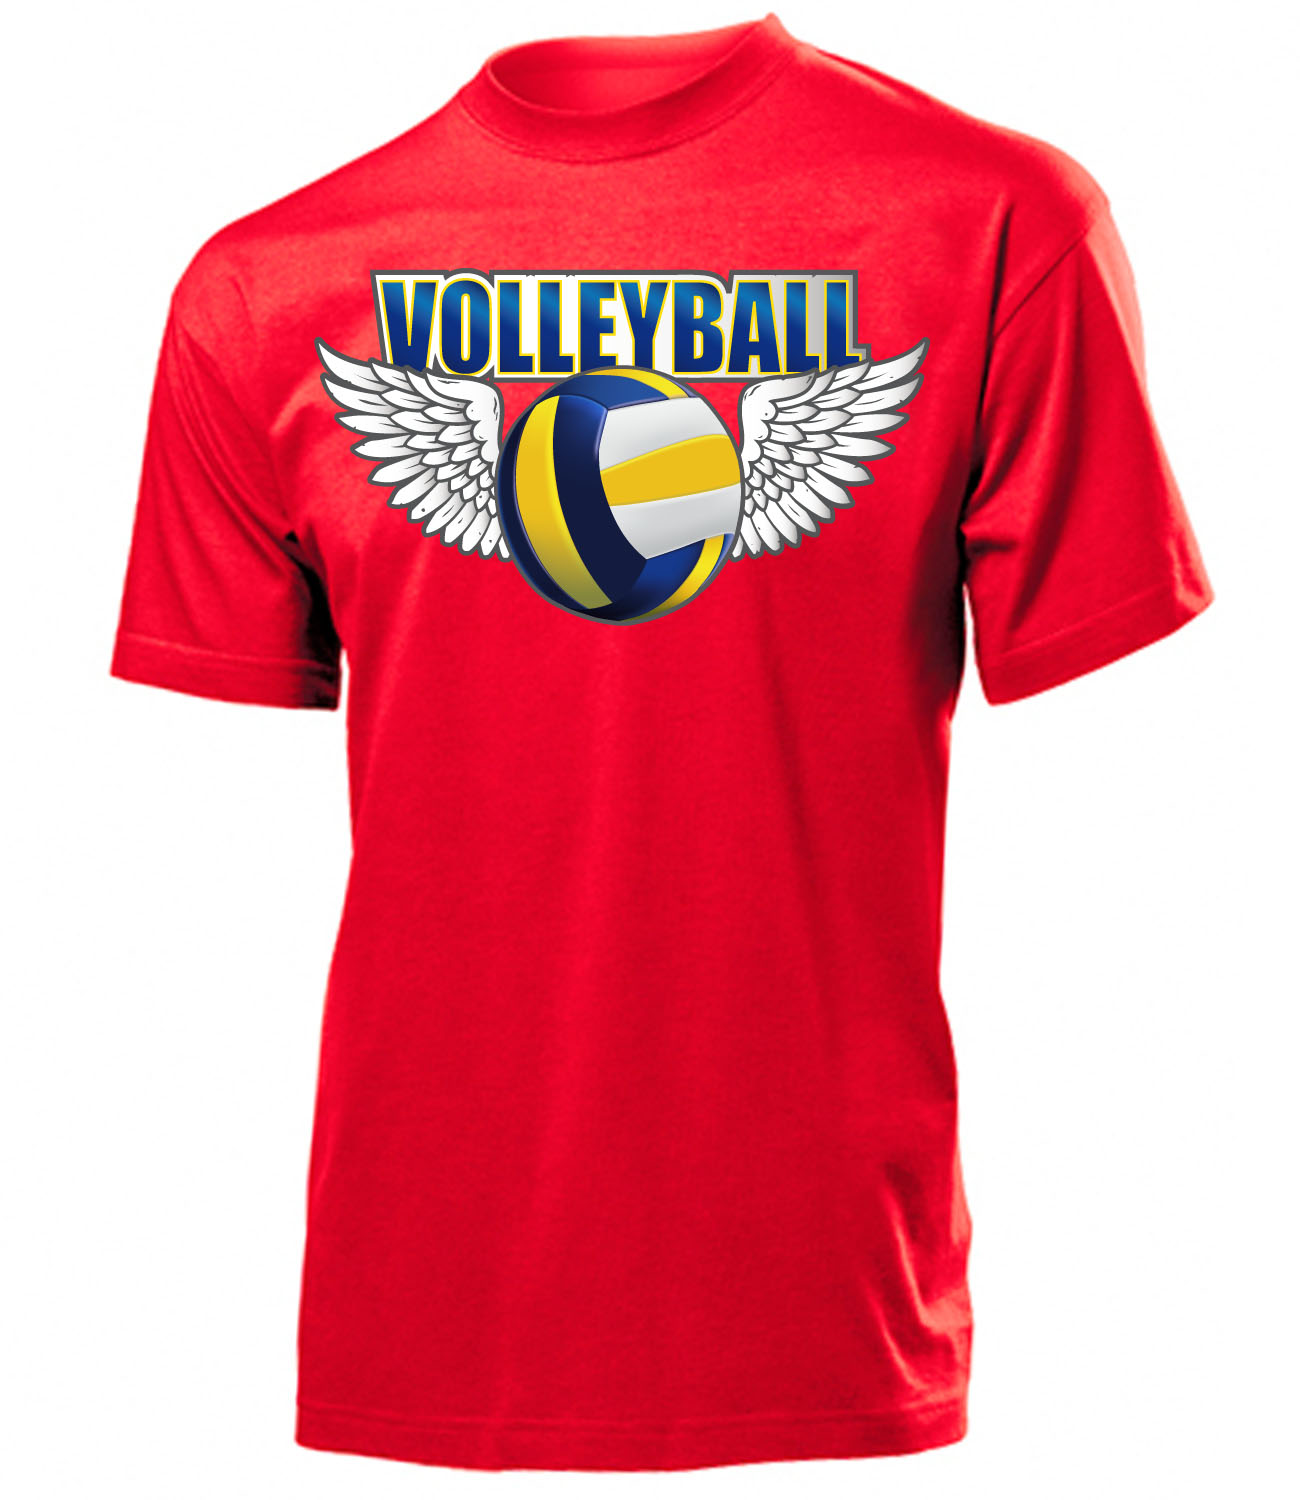 volleyball t shirt herren s xxl ebay. Black Bedroom Furniture Sets. Home Design Ideas